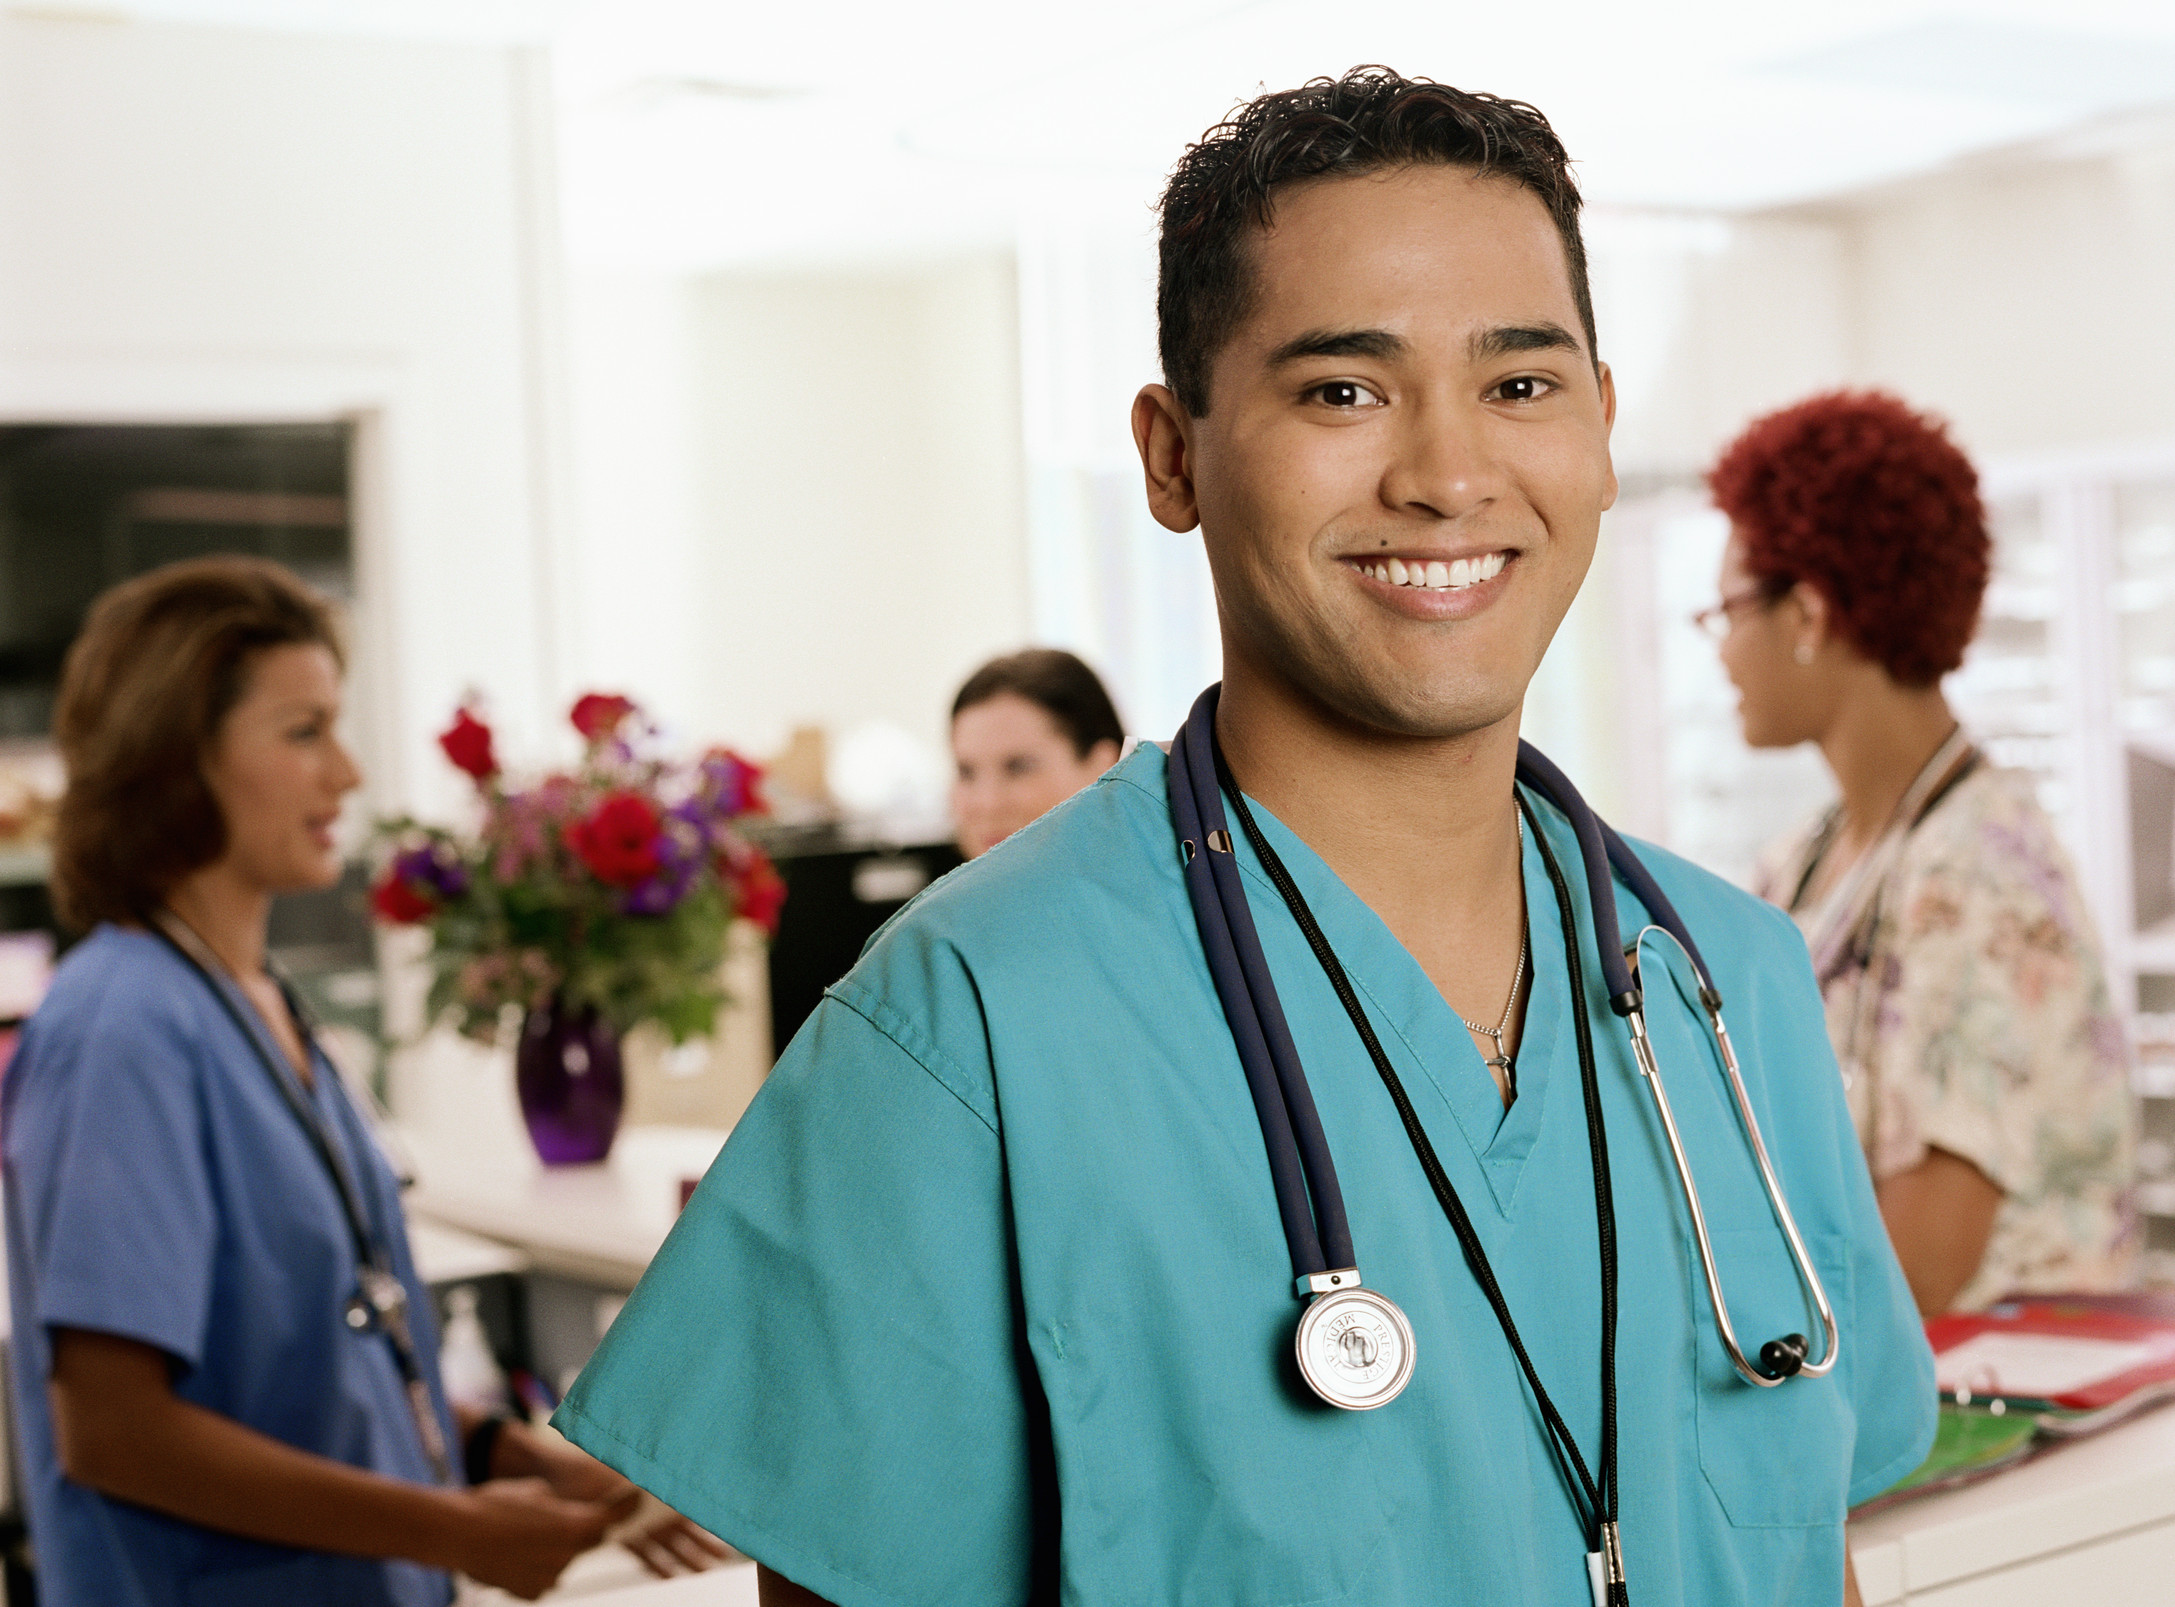 Why Men Should Consider Joining the Nursing Field